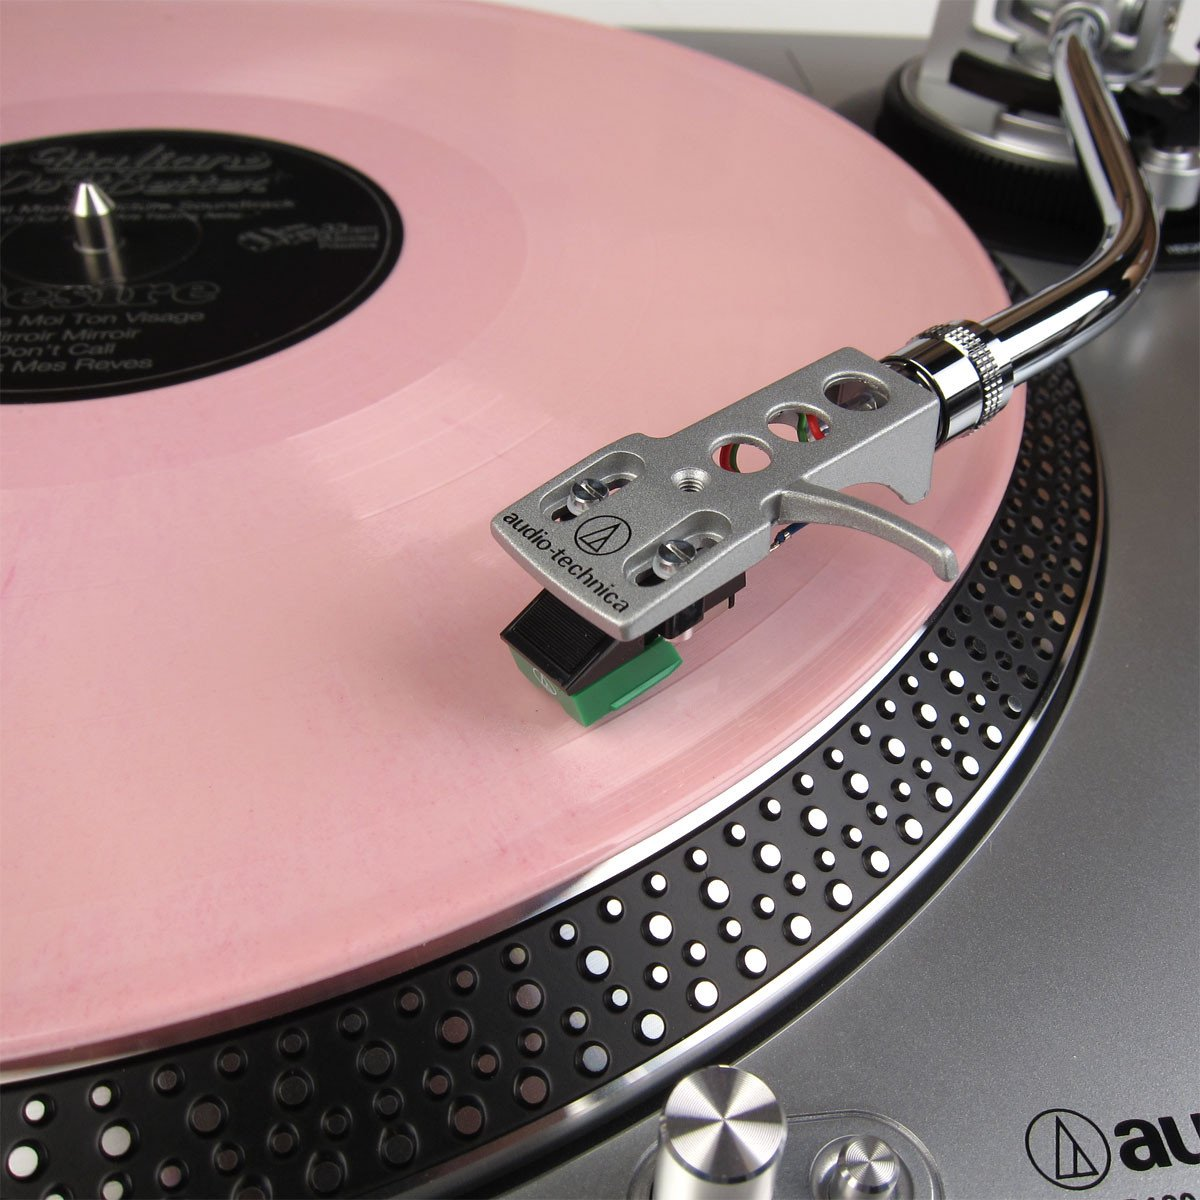 The Audio Technica AT-LP120-USB